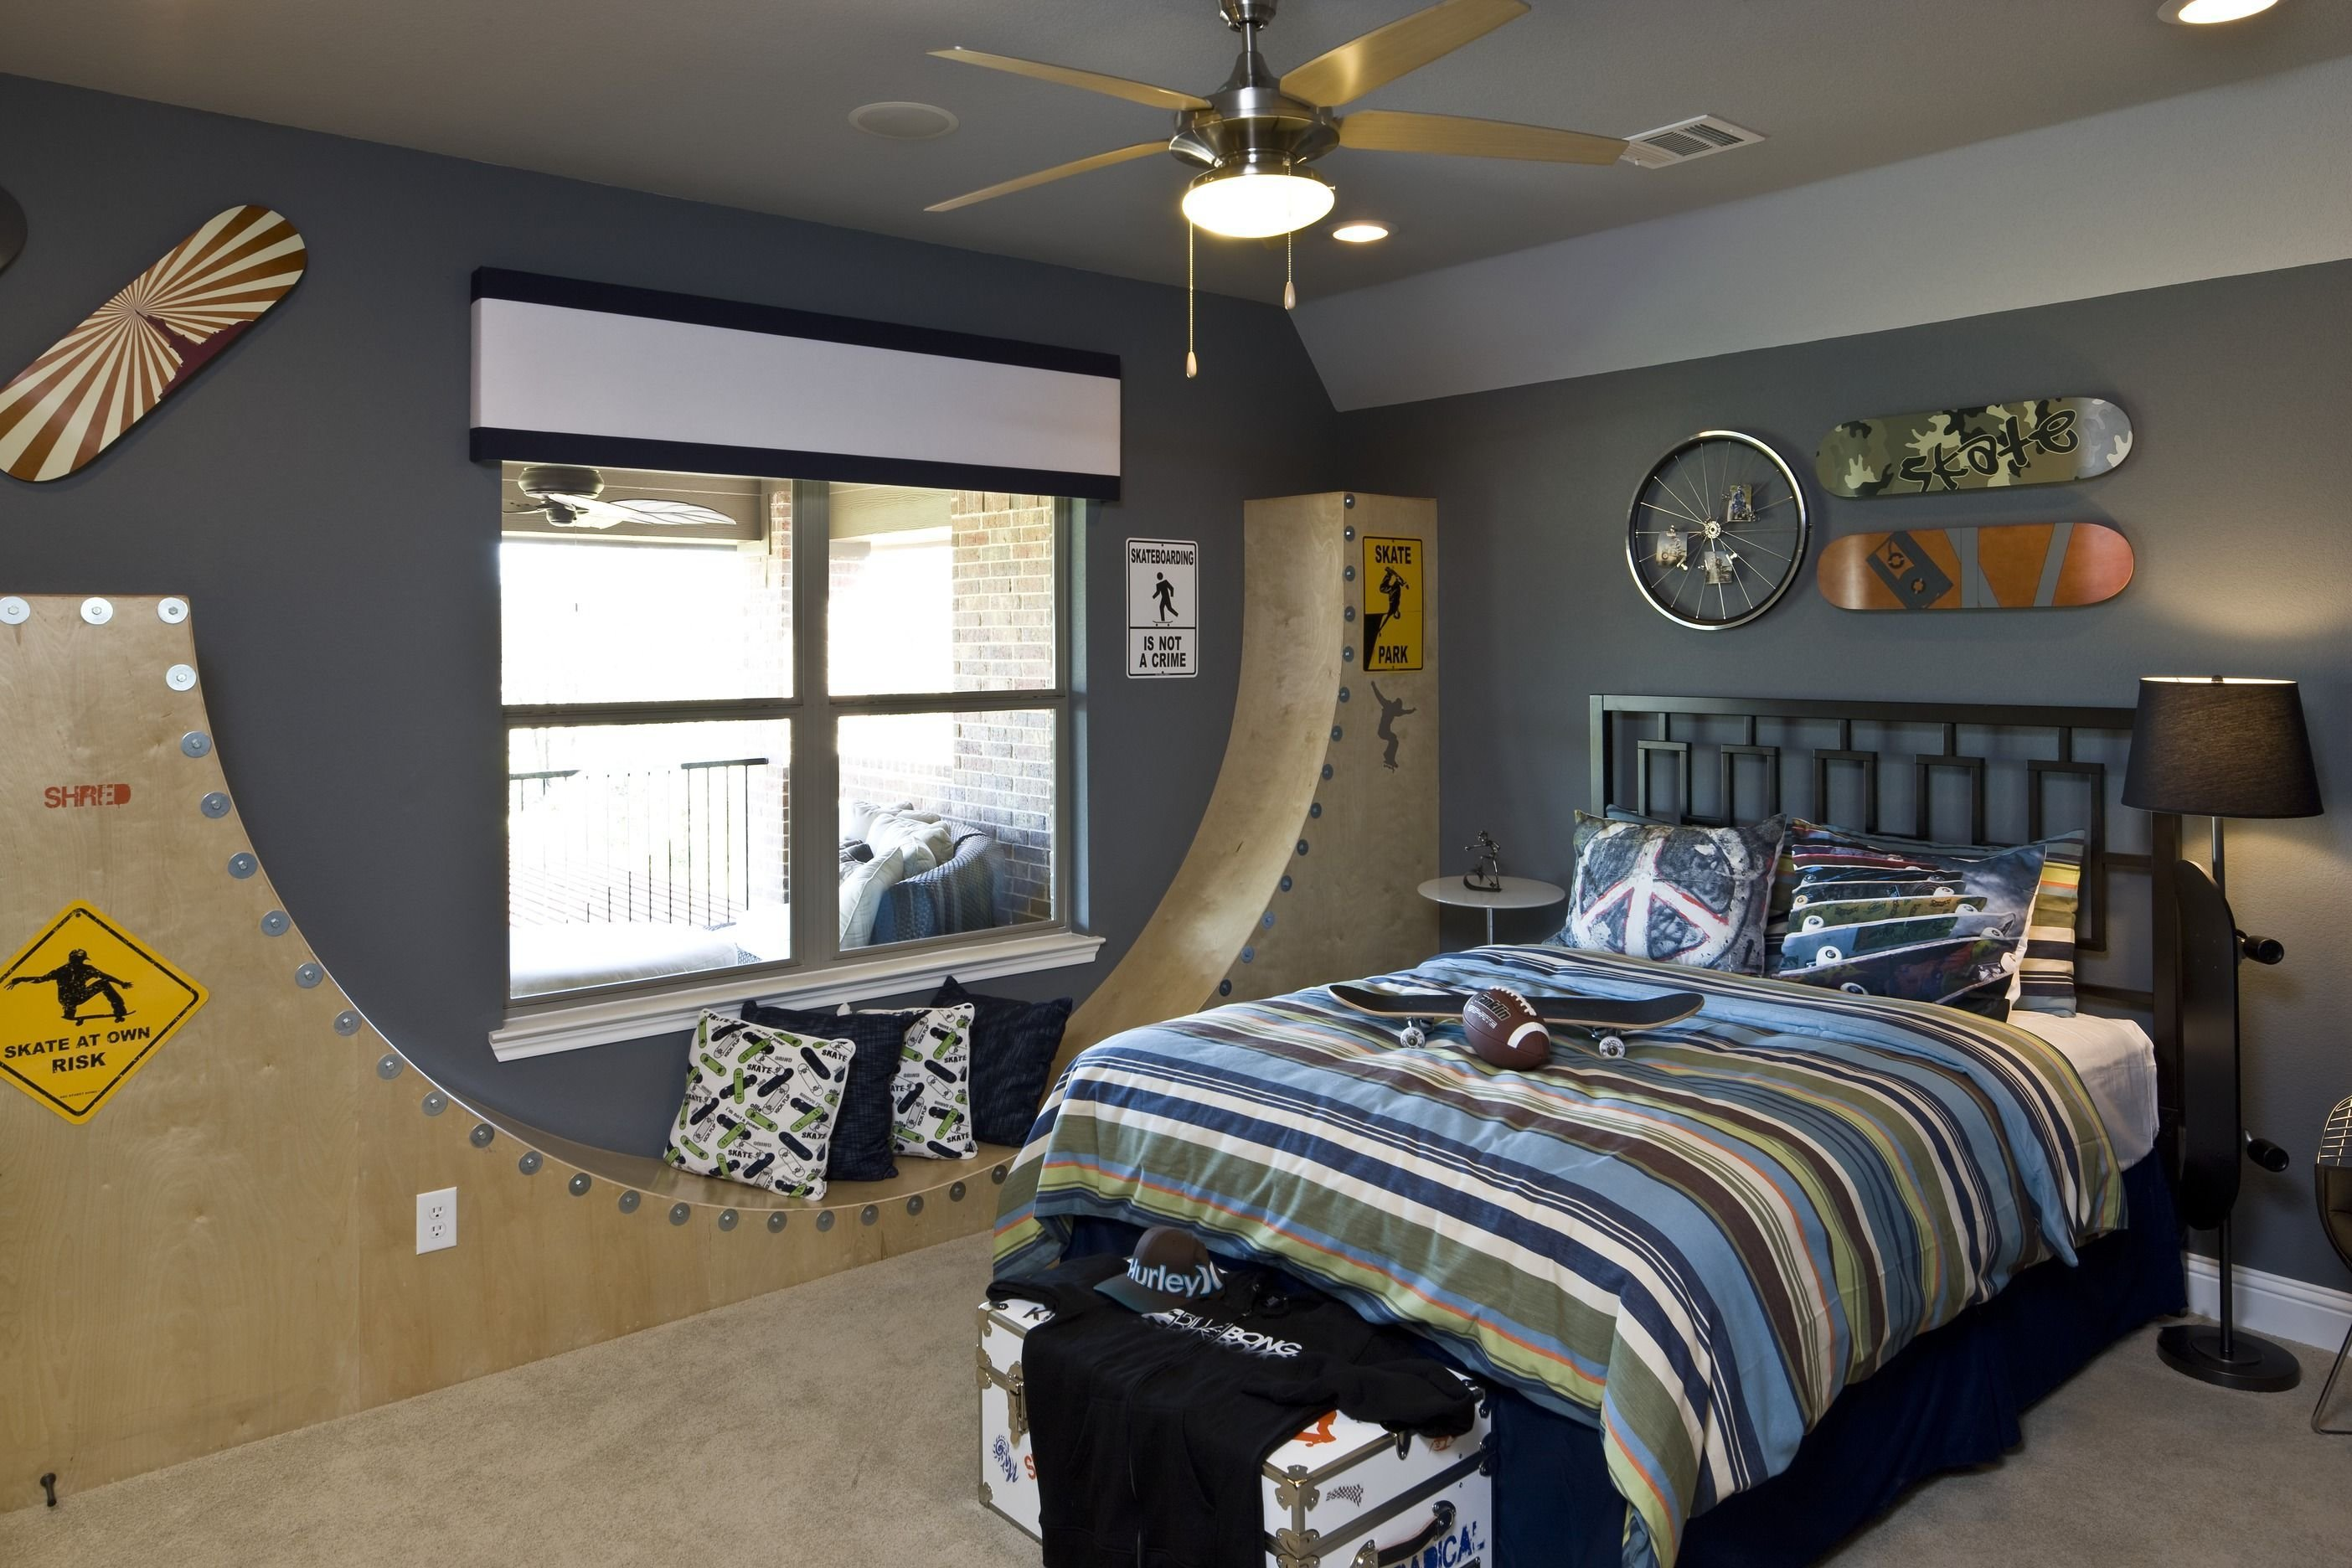 Best Head To The Skate Park In This Skateboard Themed Room With Pictures